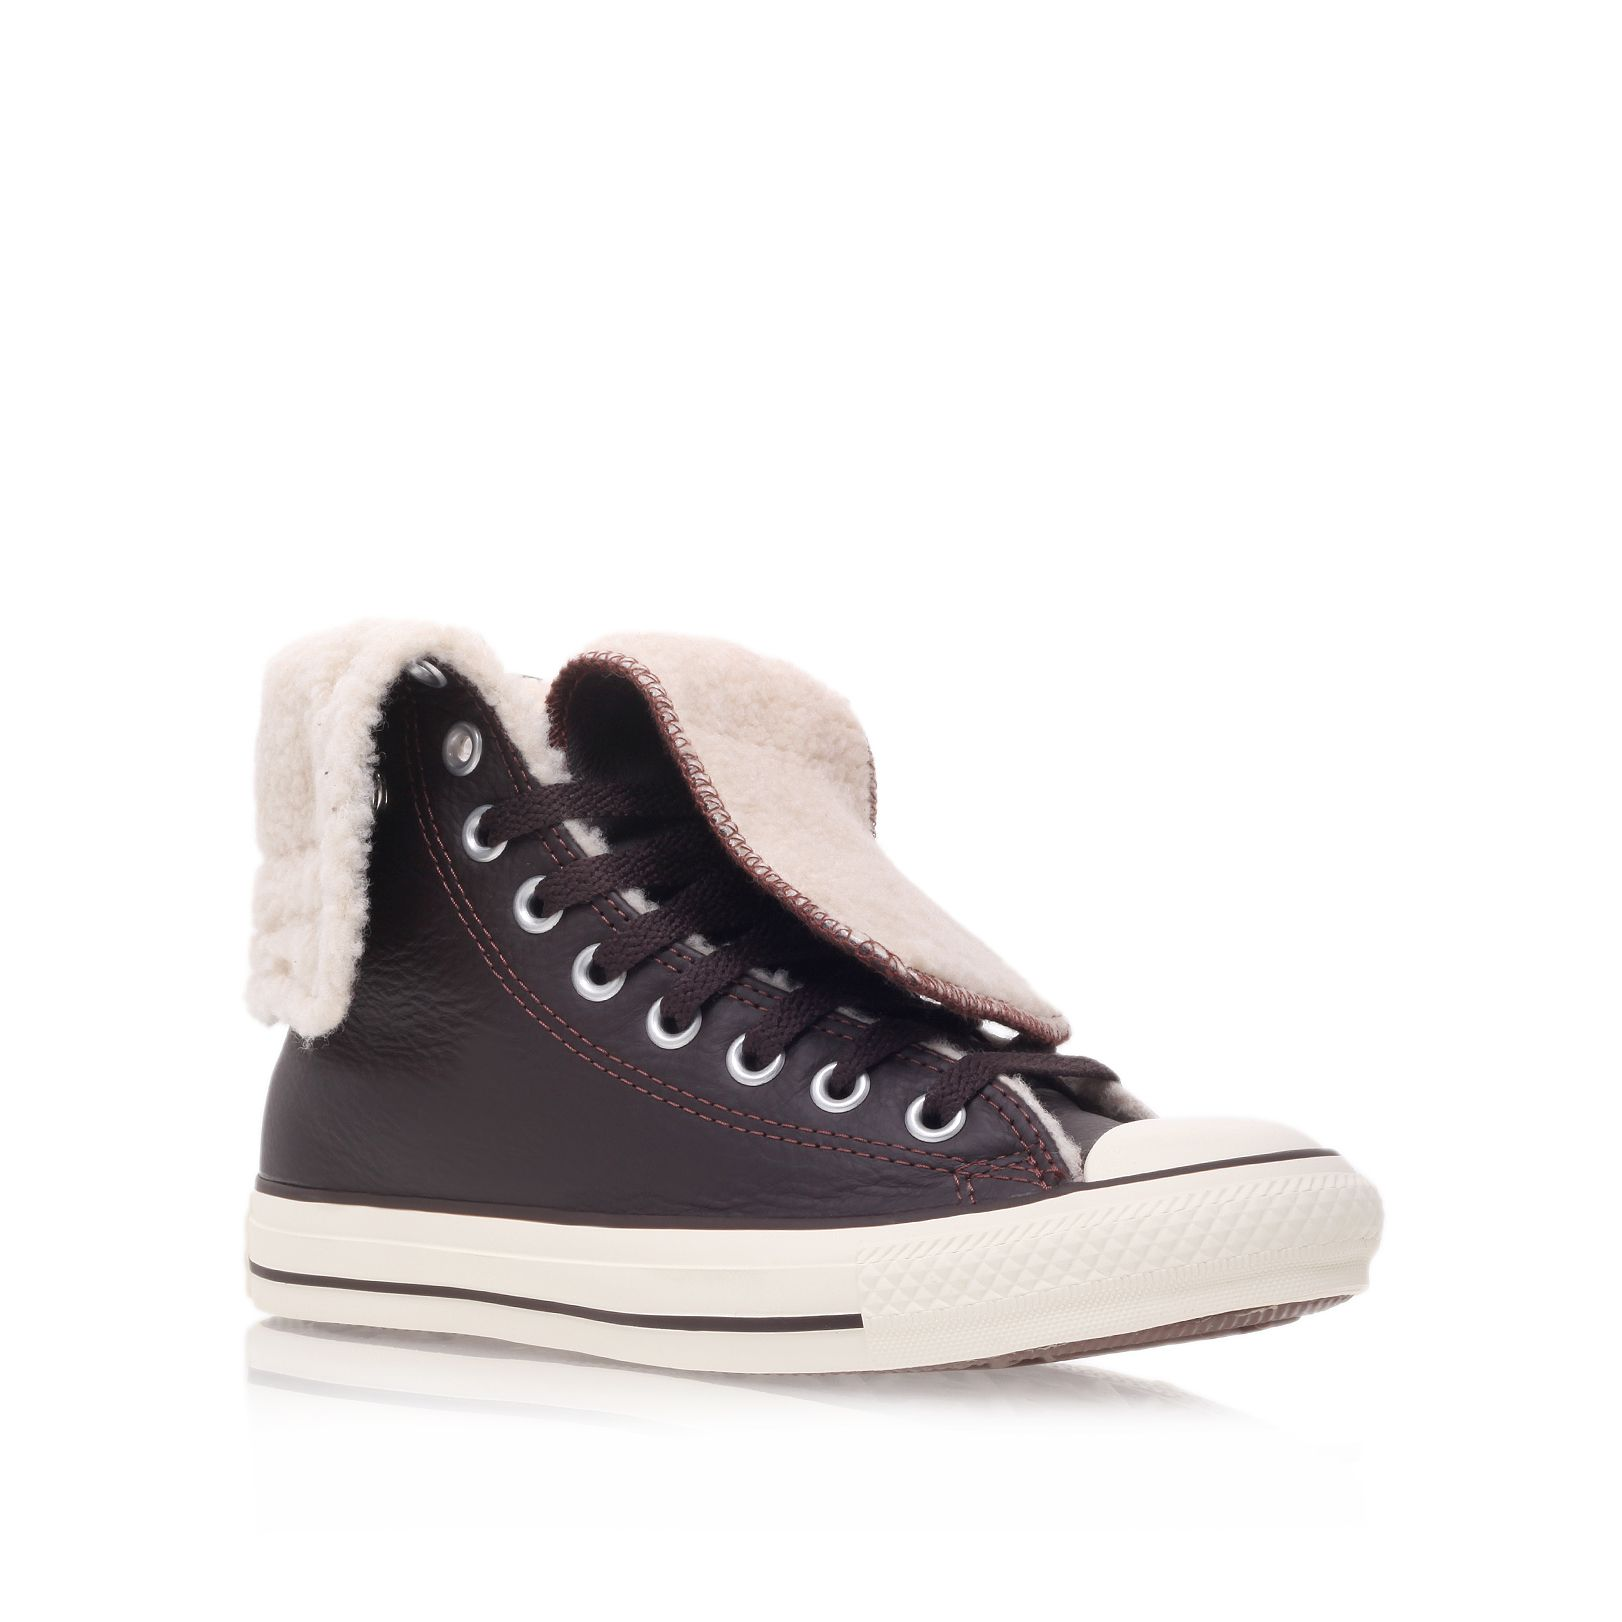 Ct knee lace up sneaker